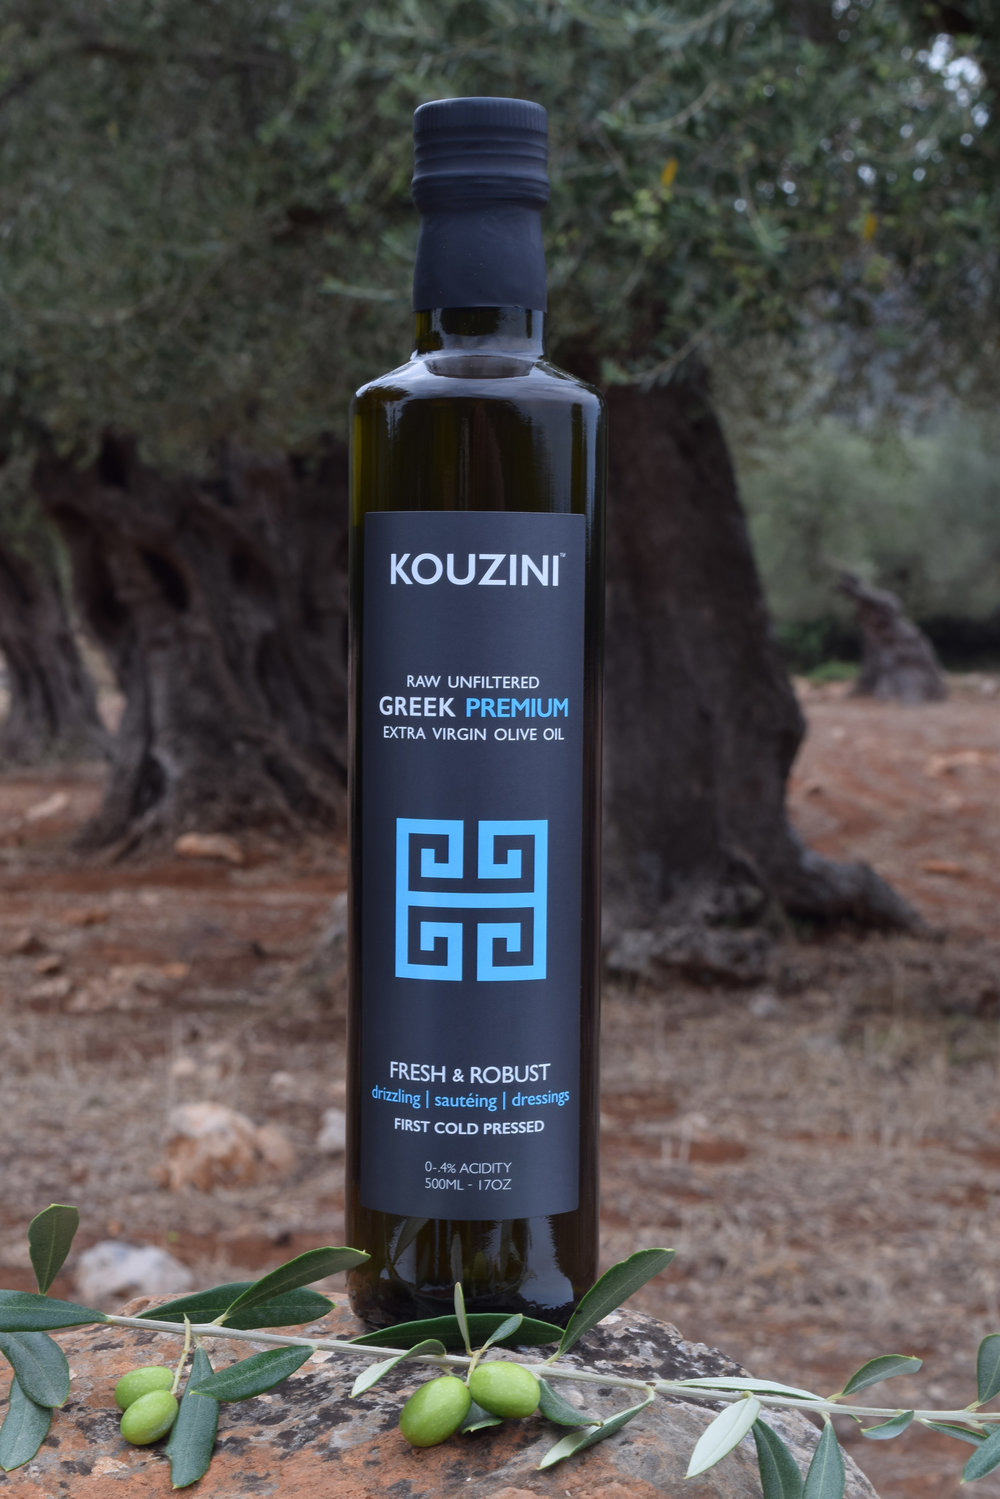 Unfiltered Ultra Premium Greek extra virgin olive oil.